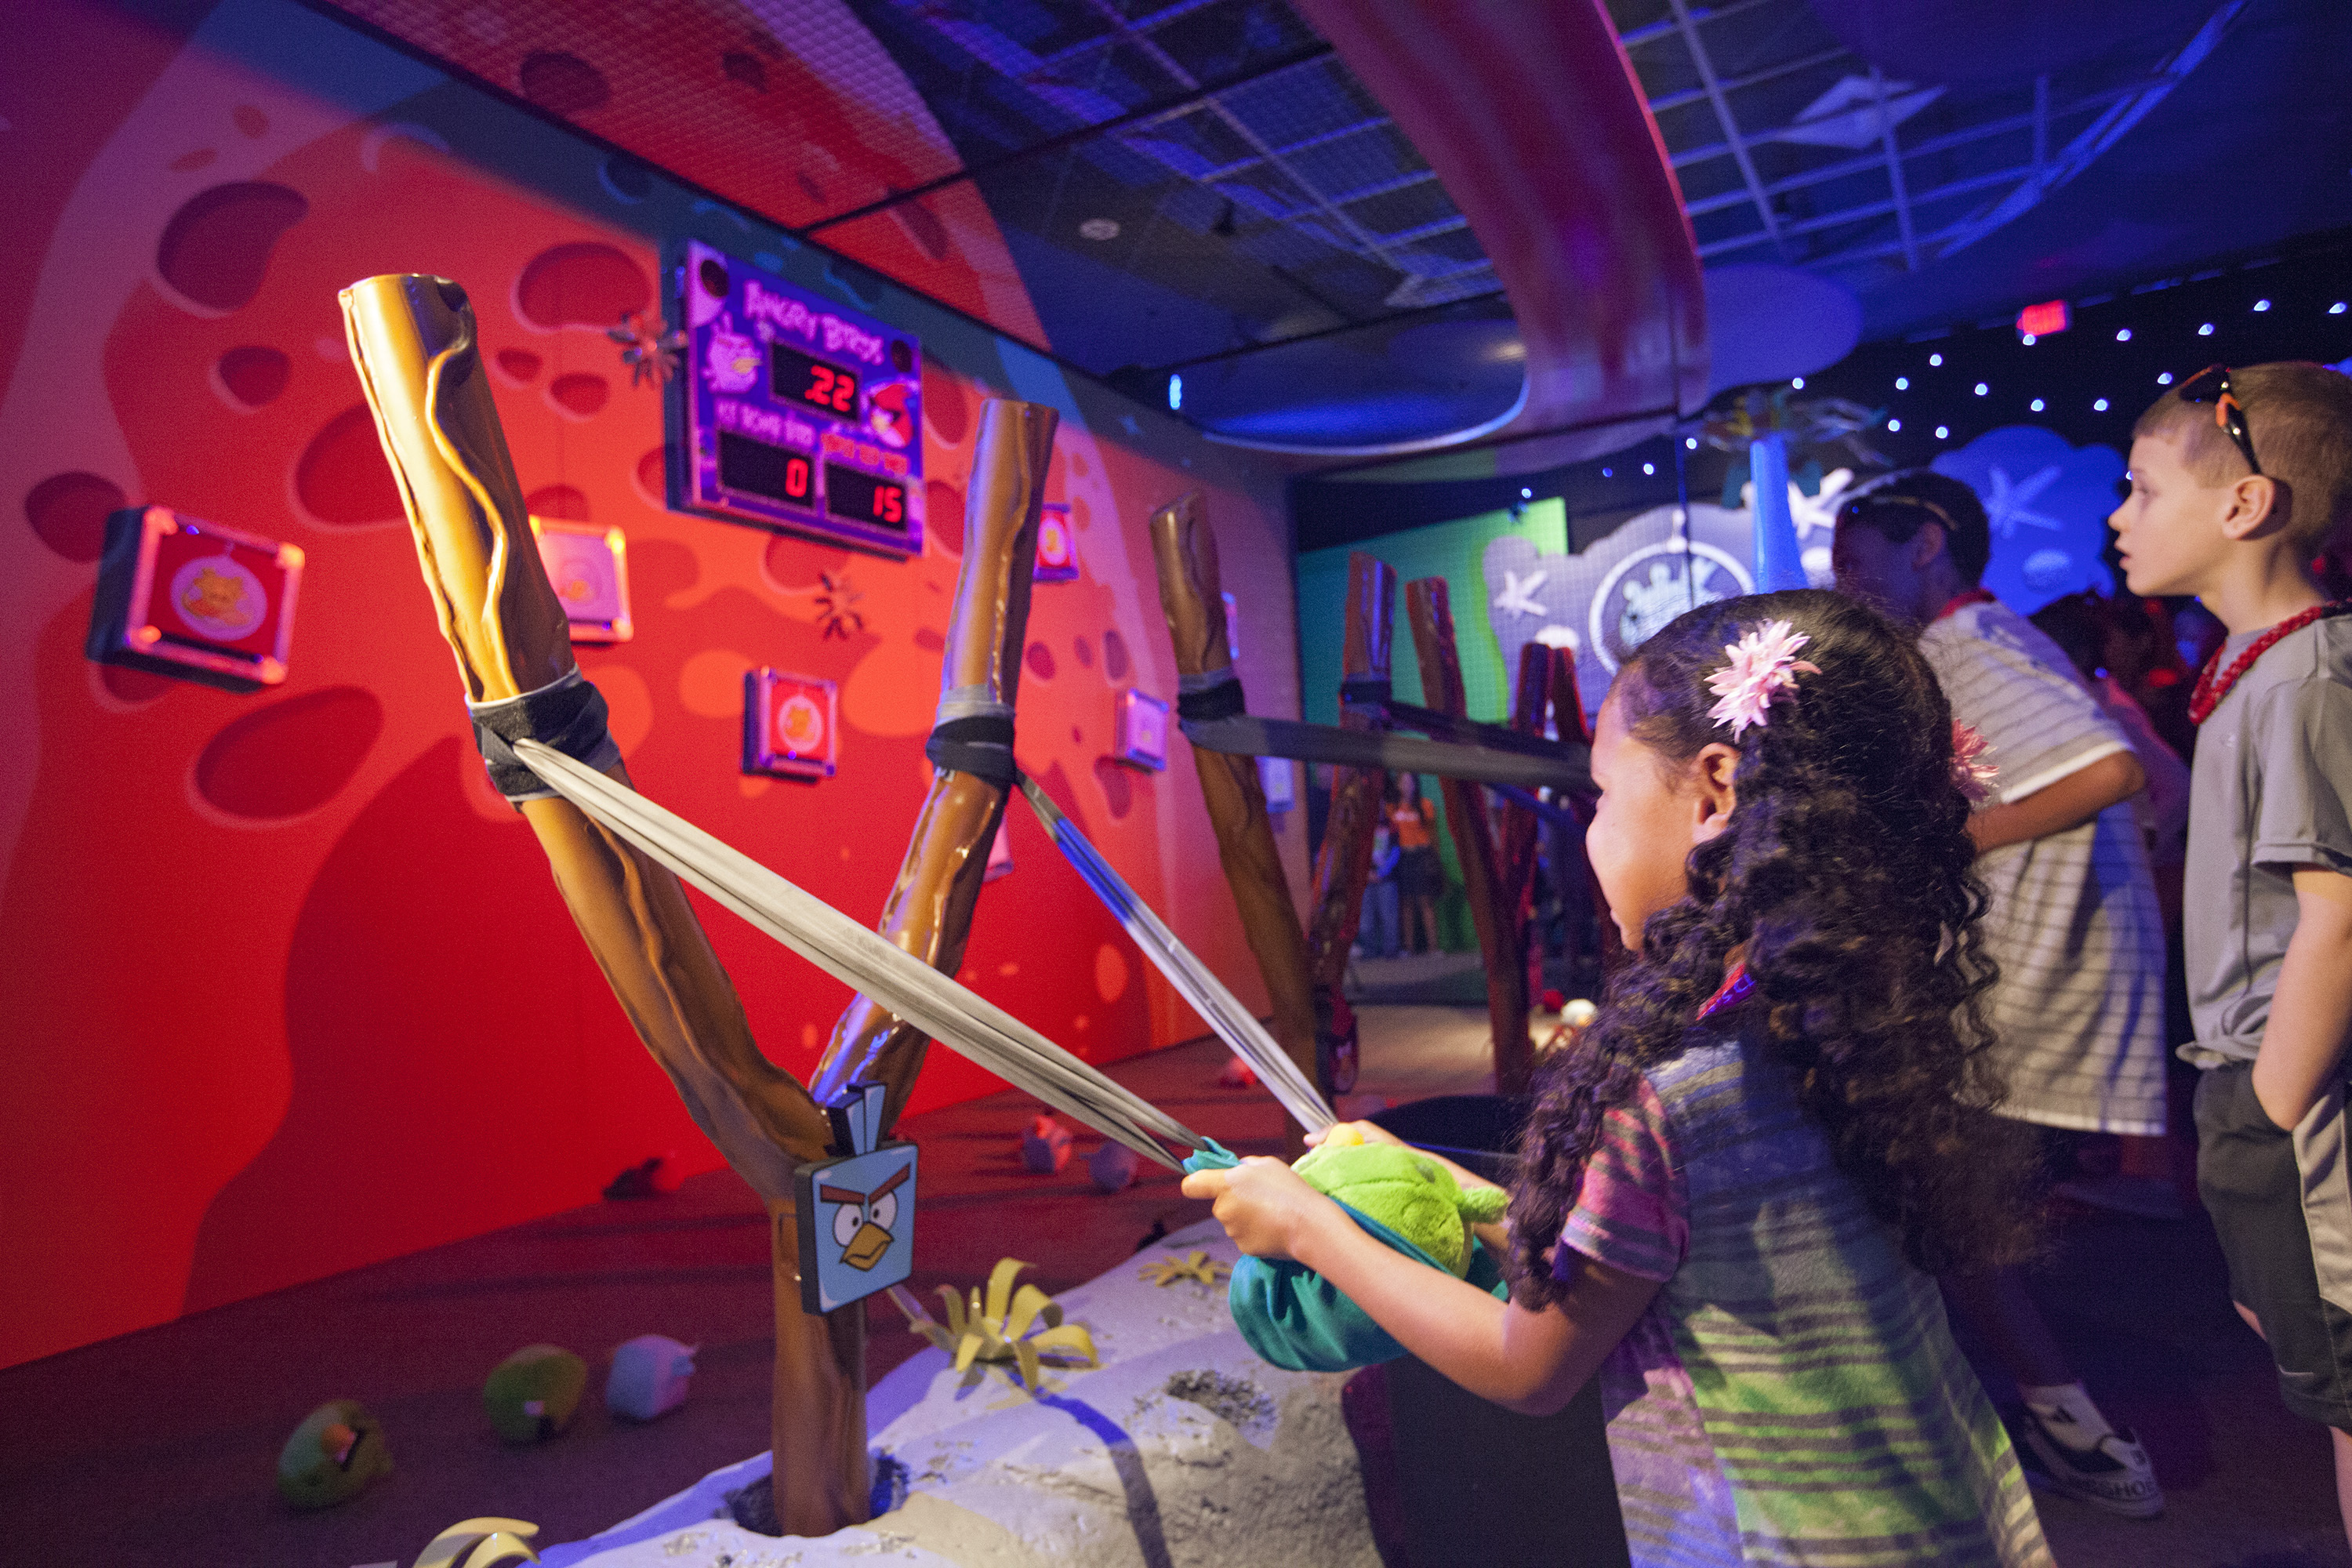 Children Take Aim at Angry Birds Space Encounter Exhibit